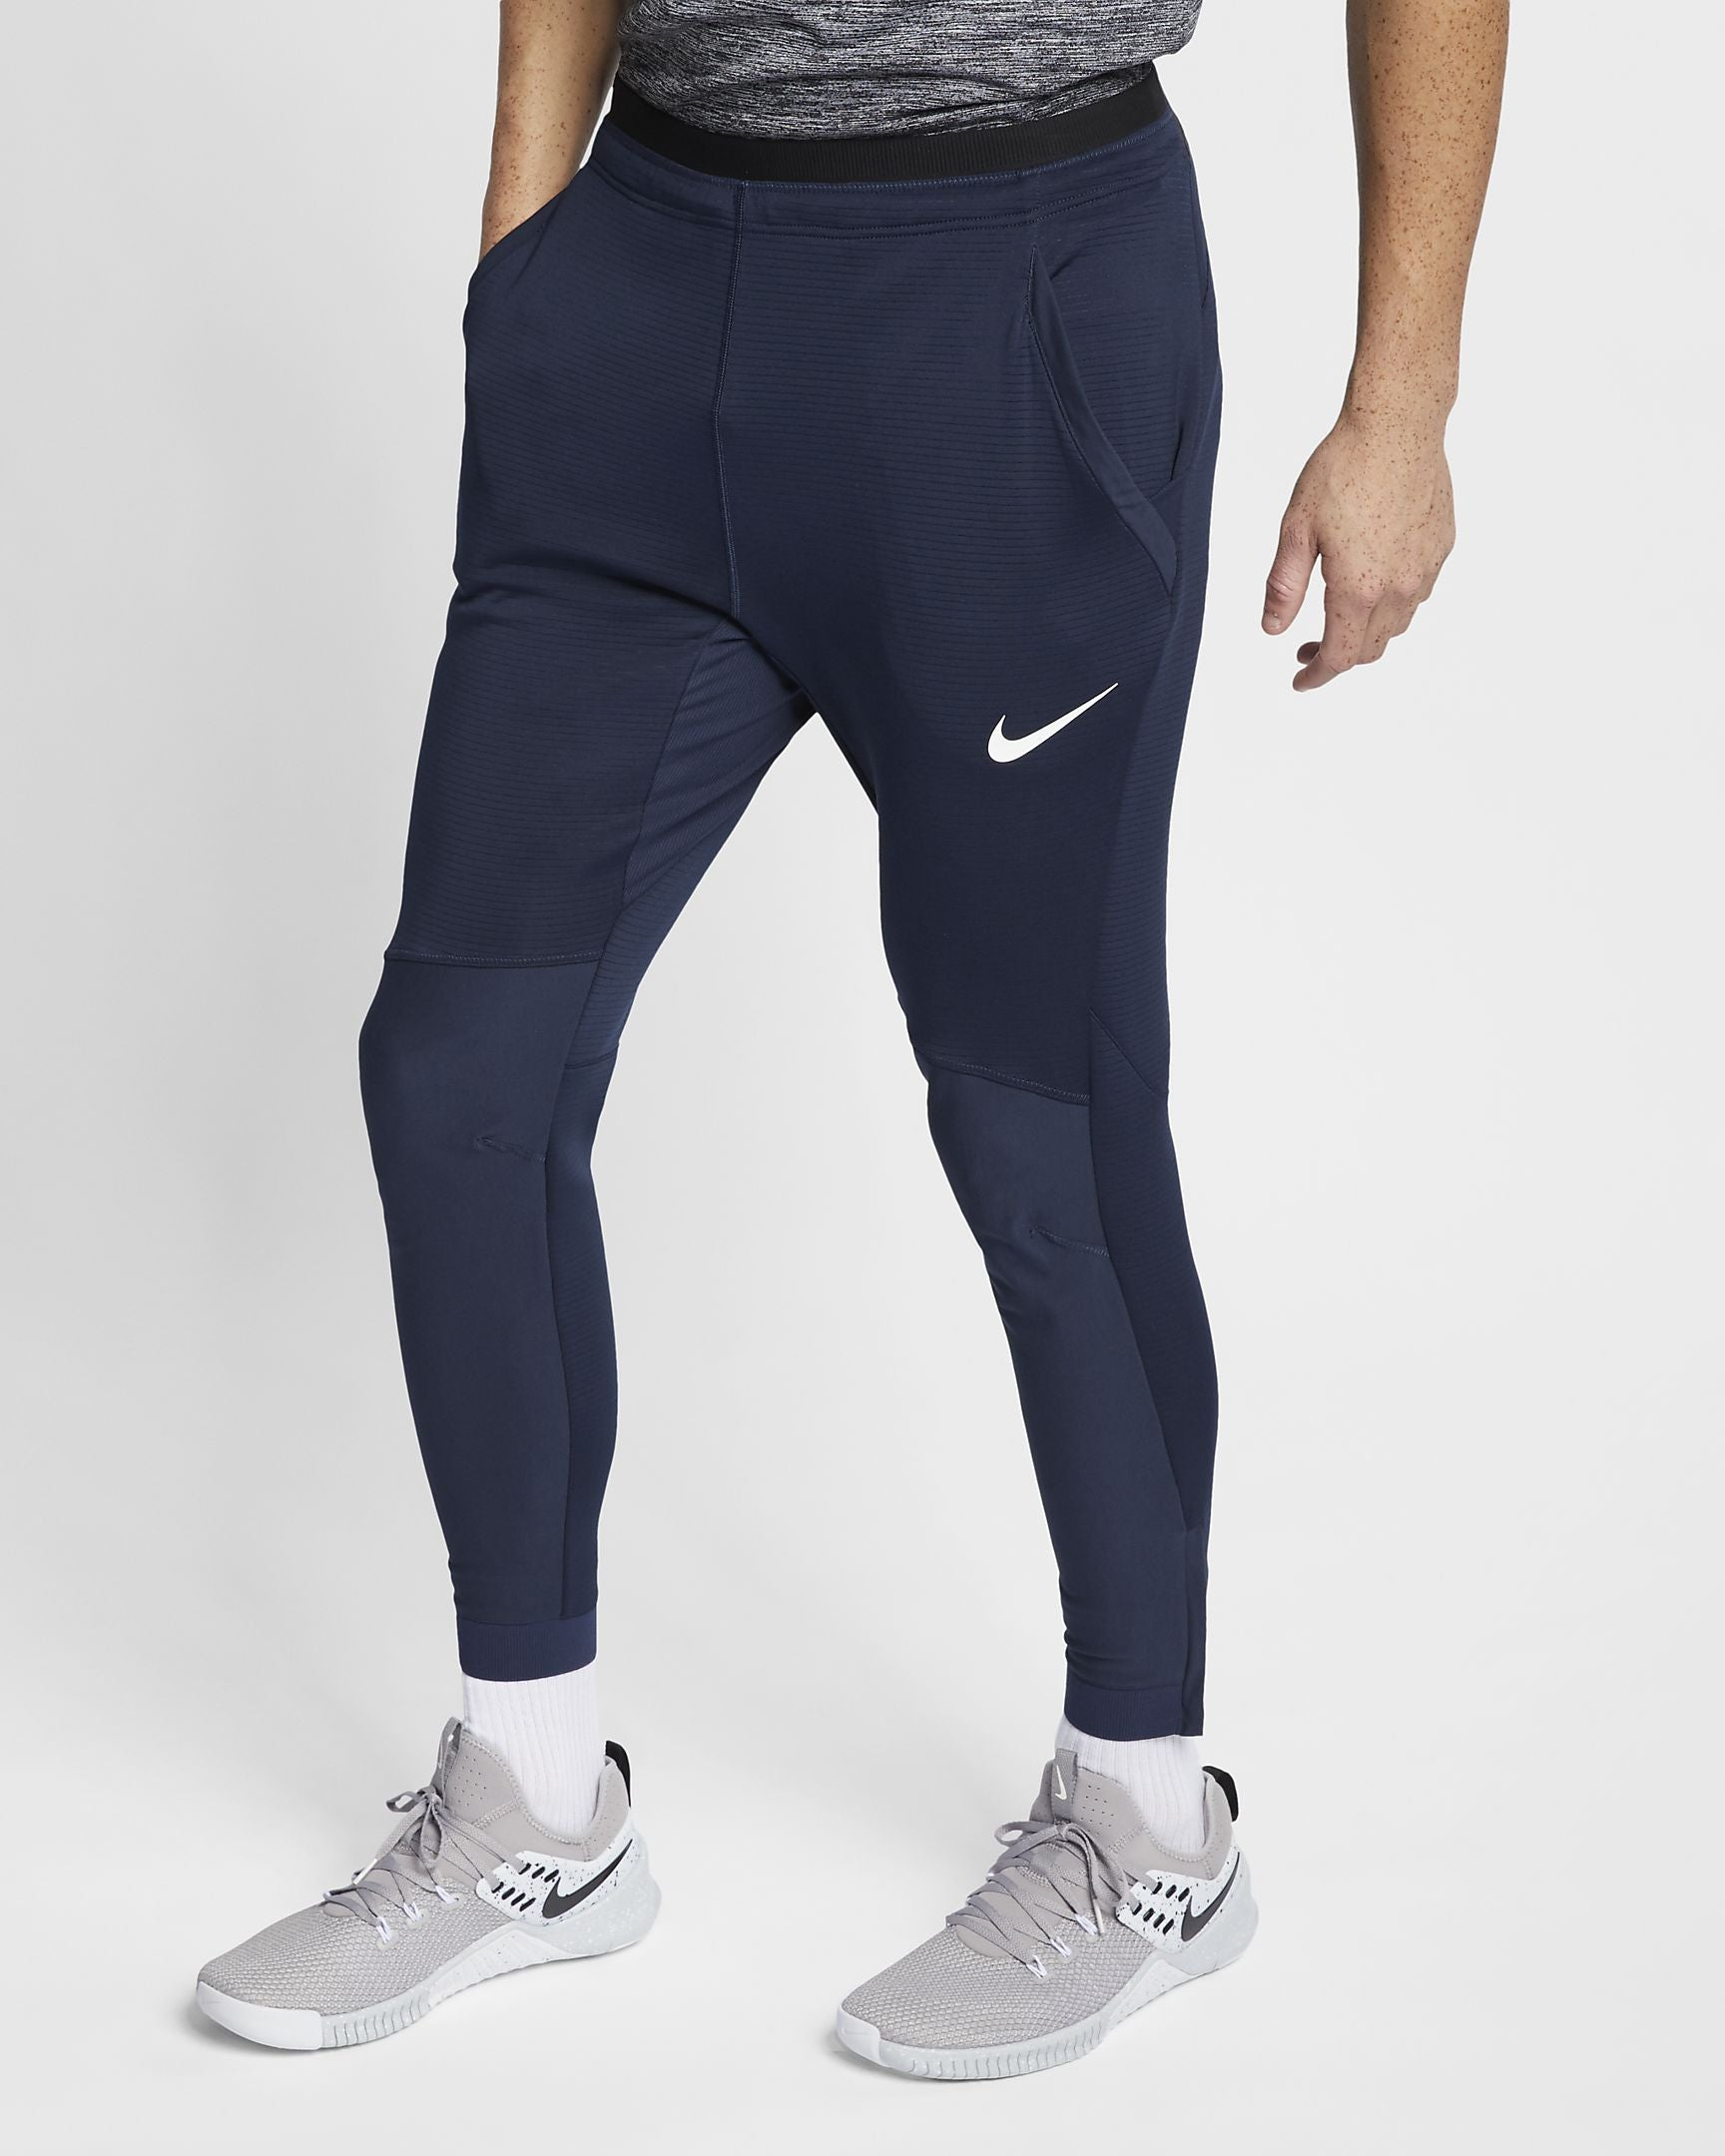 Pro Fitness Pants (Tall Fit) NK-BV5515-451